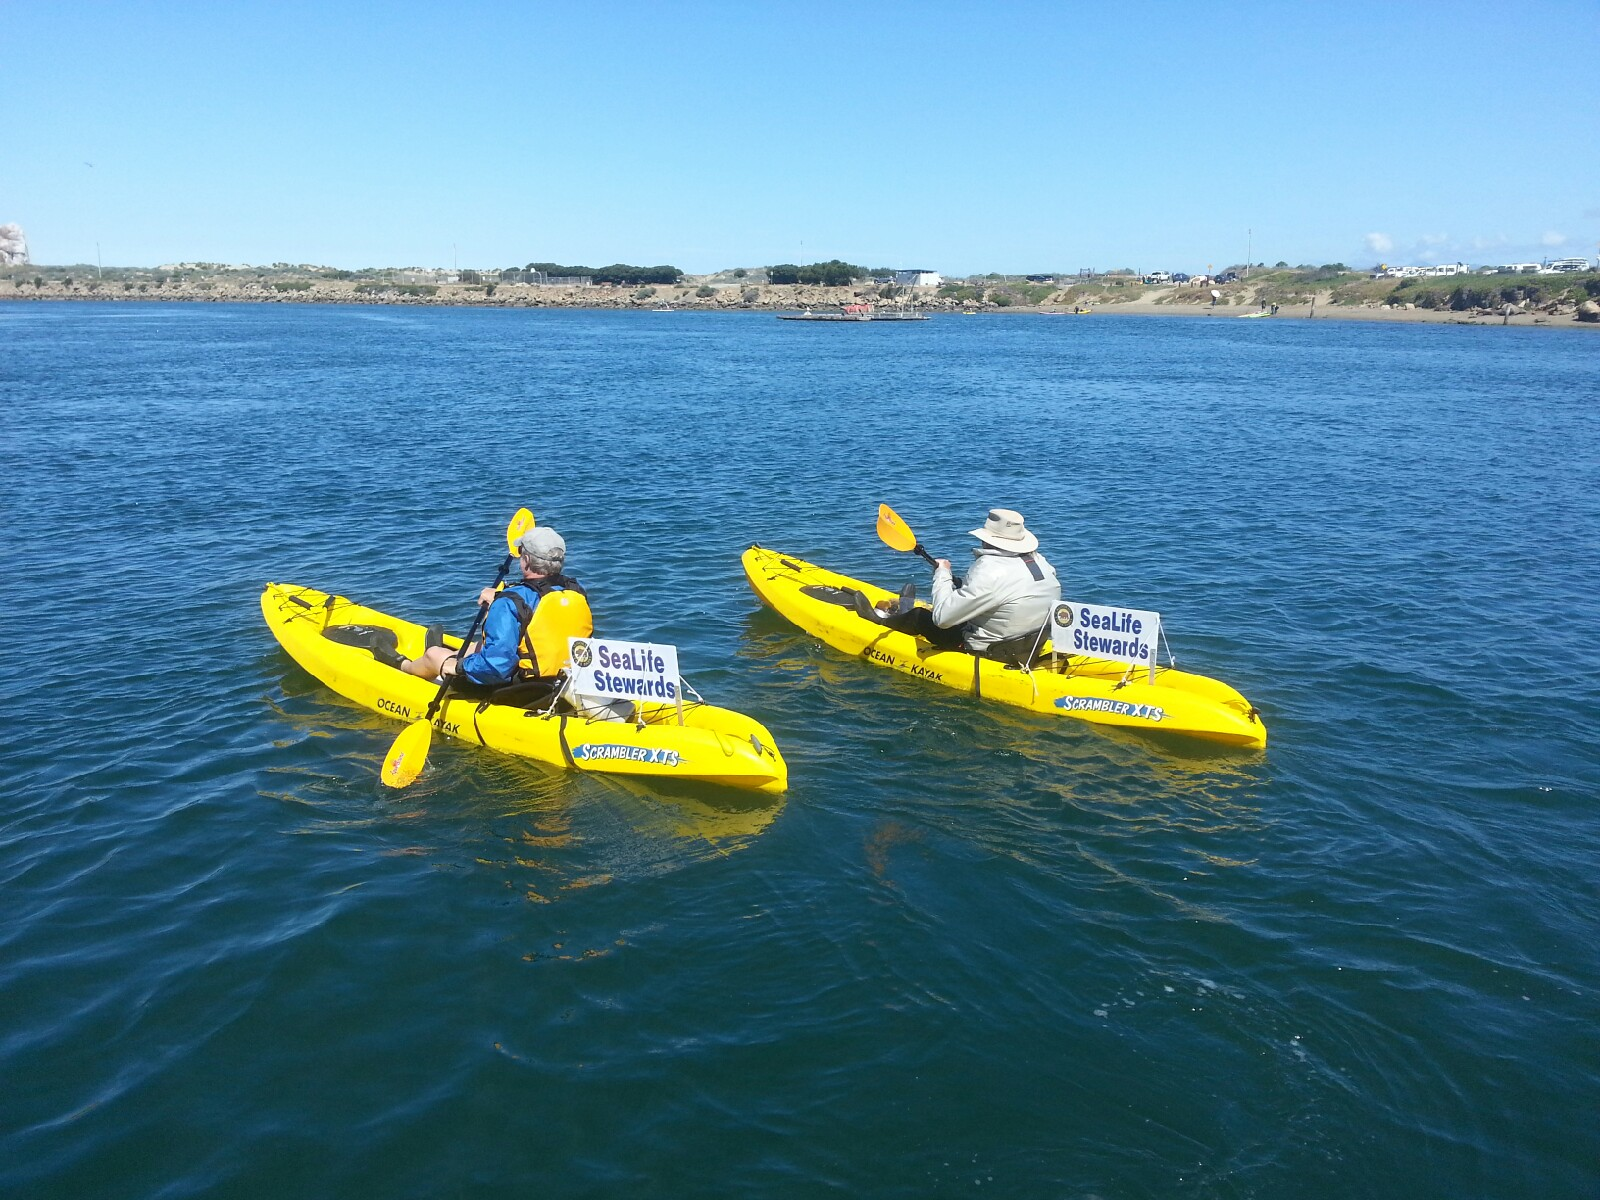 Sea Life volunteers in kayaks